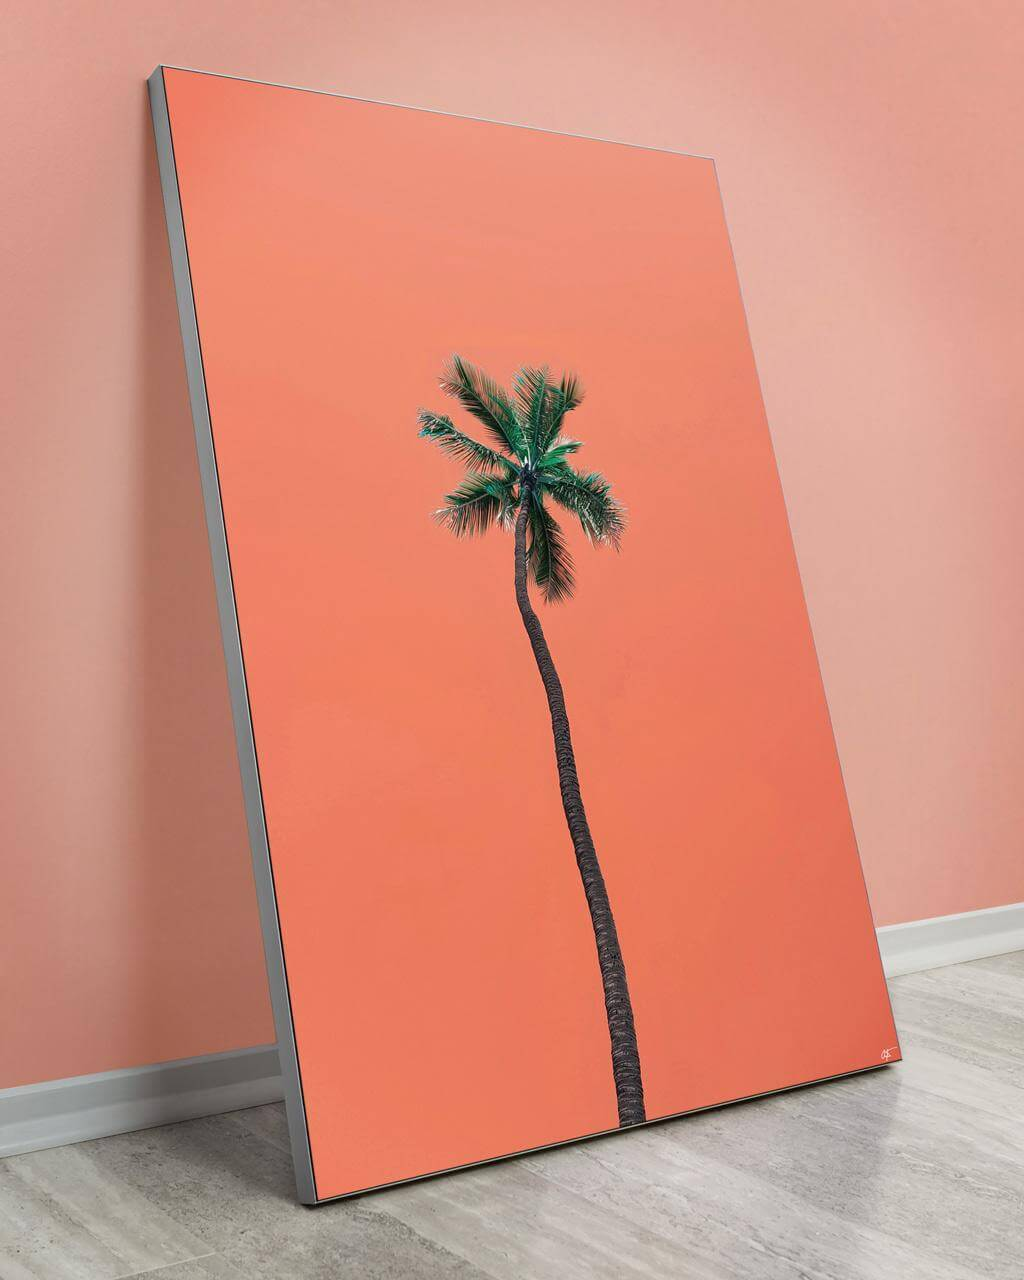 Oversized wall decor showing a single Waikiki palm tree and an orange background